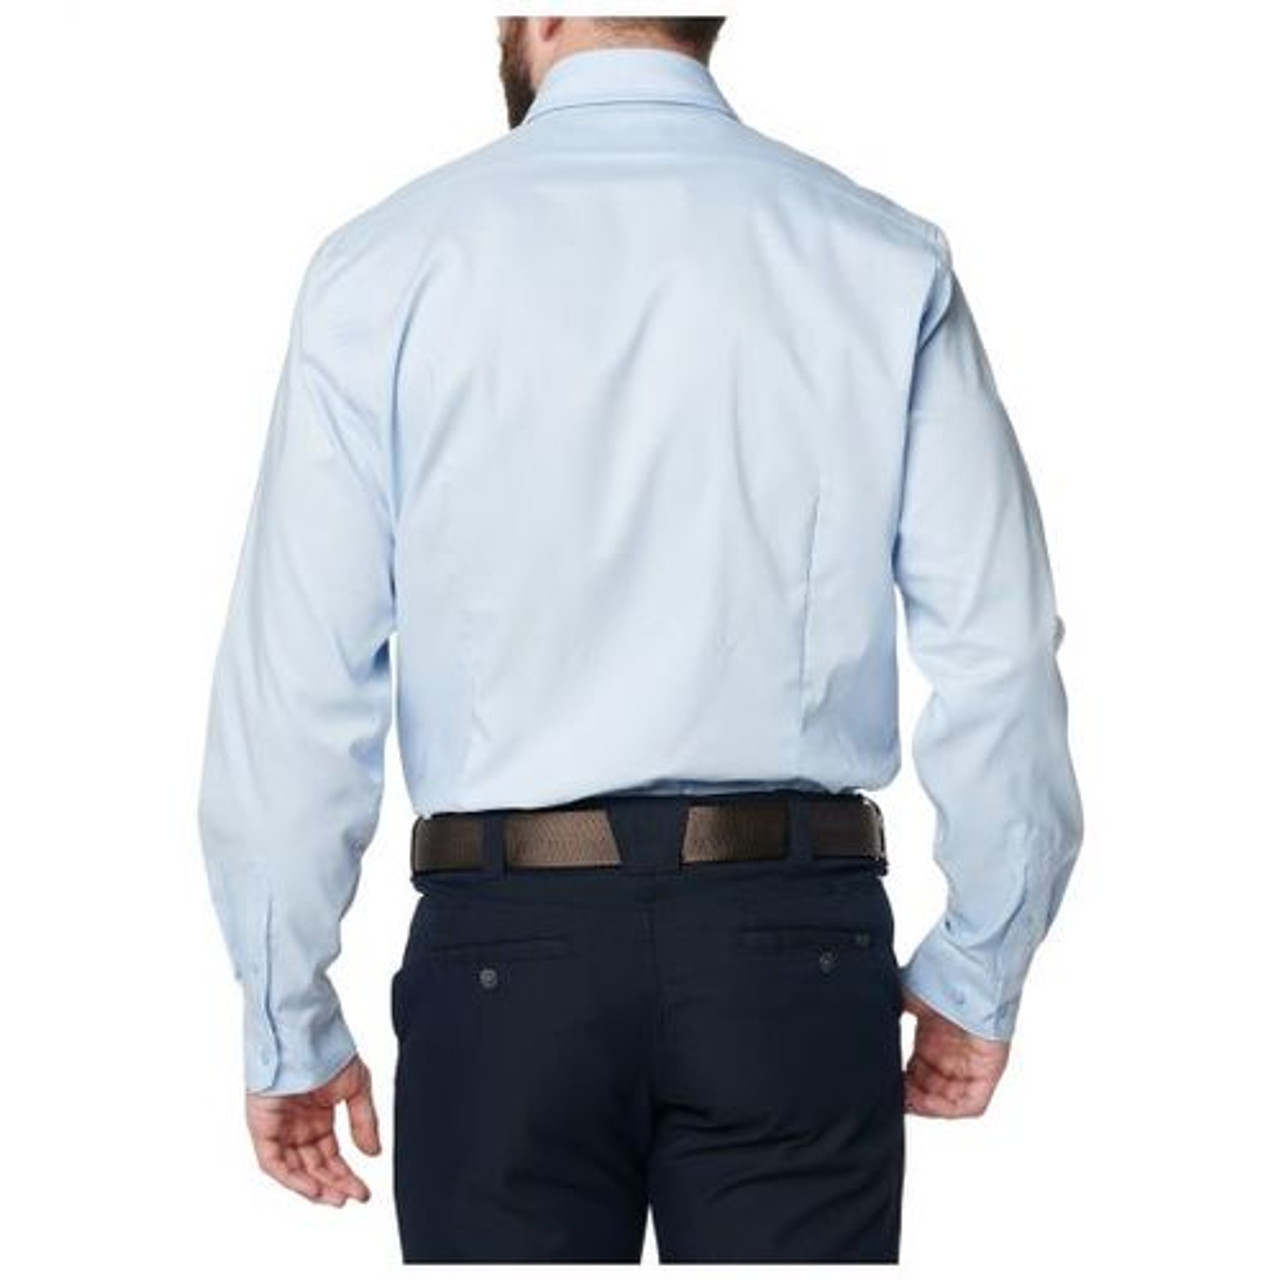 5.11 Tactical 72489 Mission Ready Fitted Long Sleeve Button-Down Casual Shirt, Polyester/Cotton, available in White, Fossil, or Blue Water